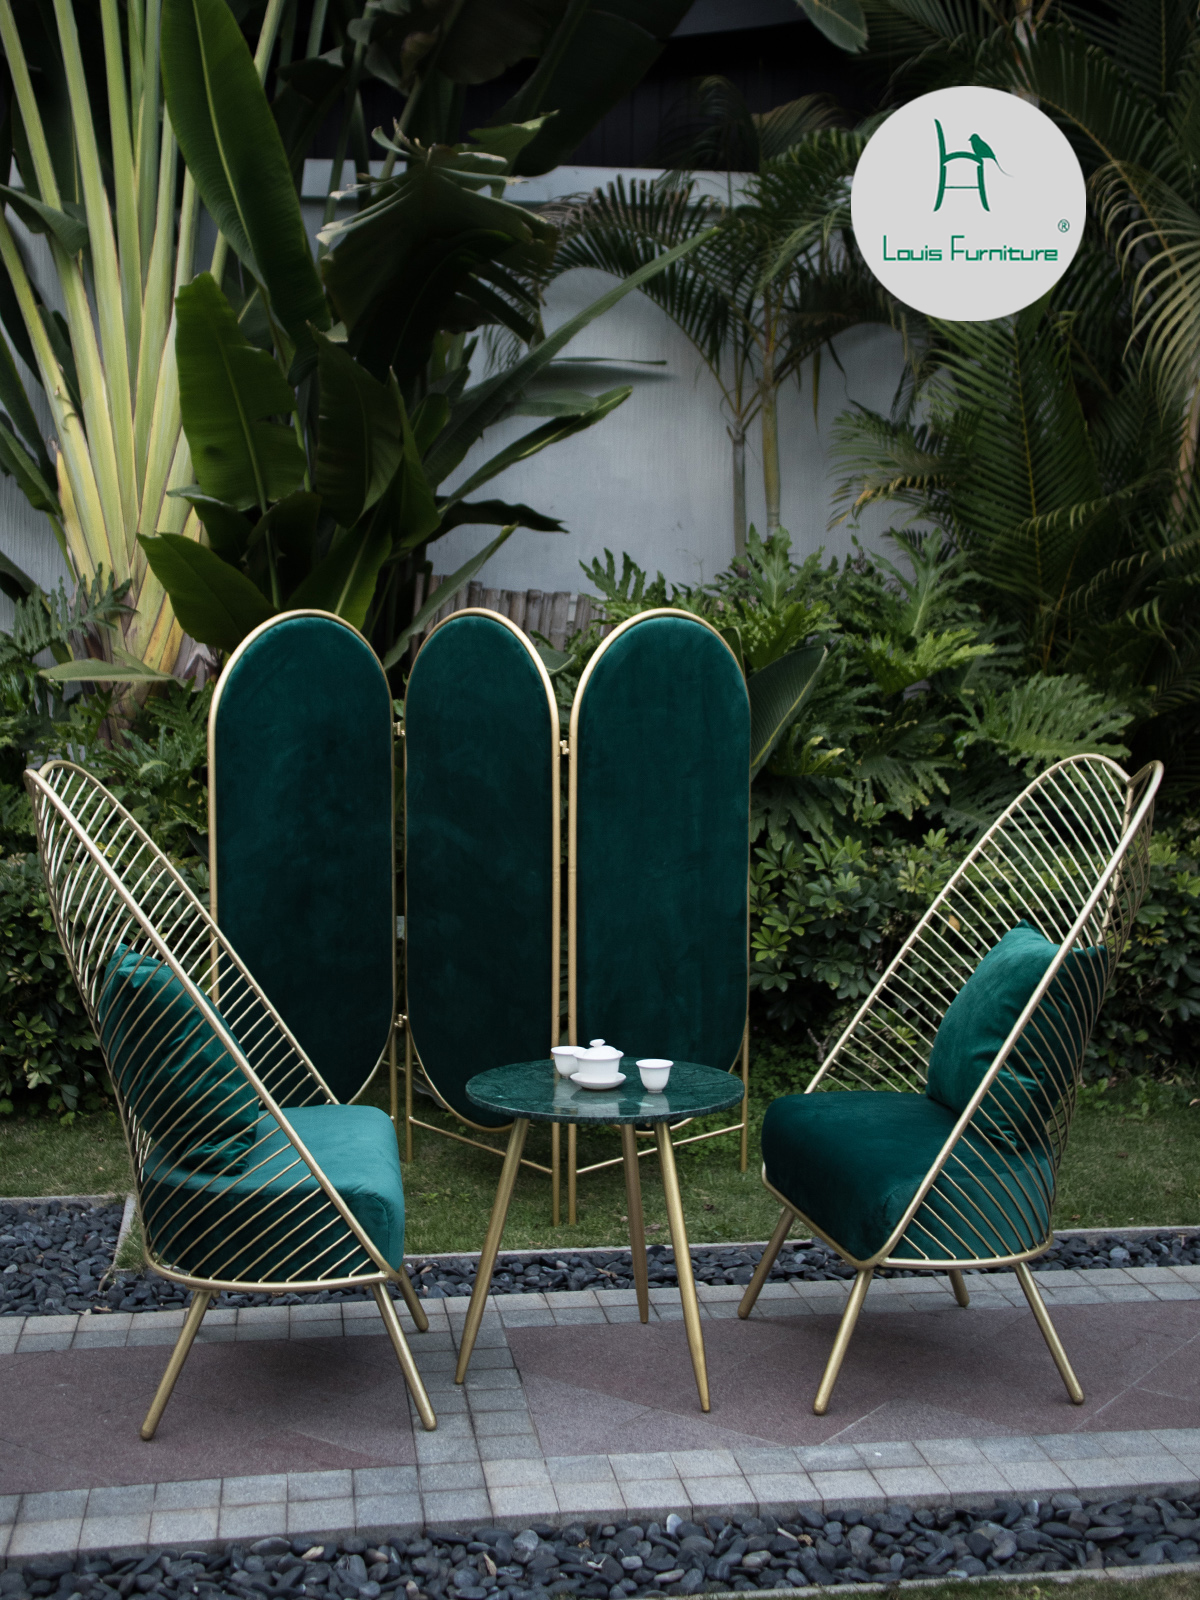 Louis fashion Garden Chairs Recreational Table and Chair Three